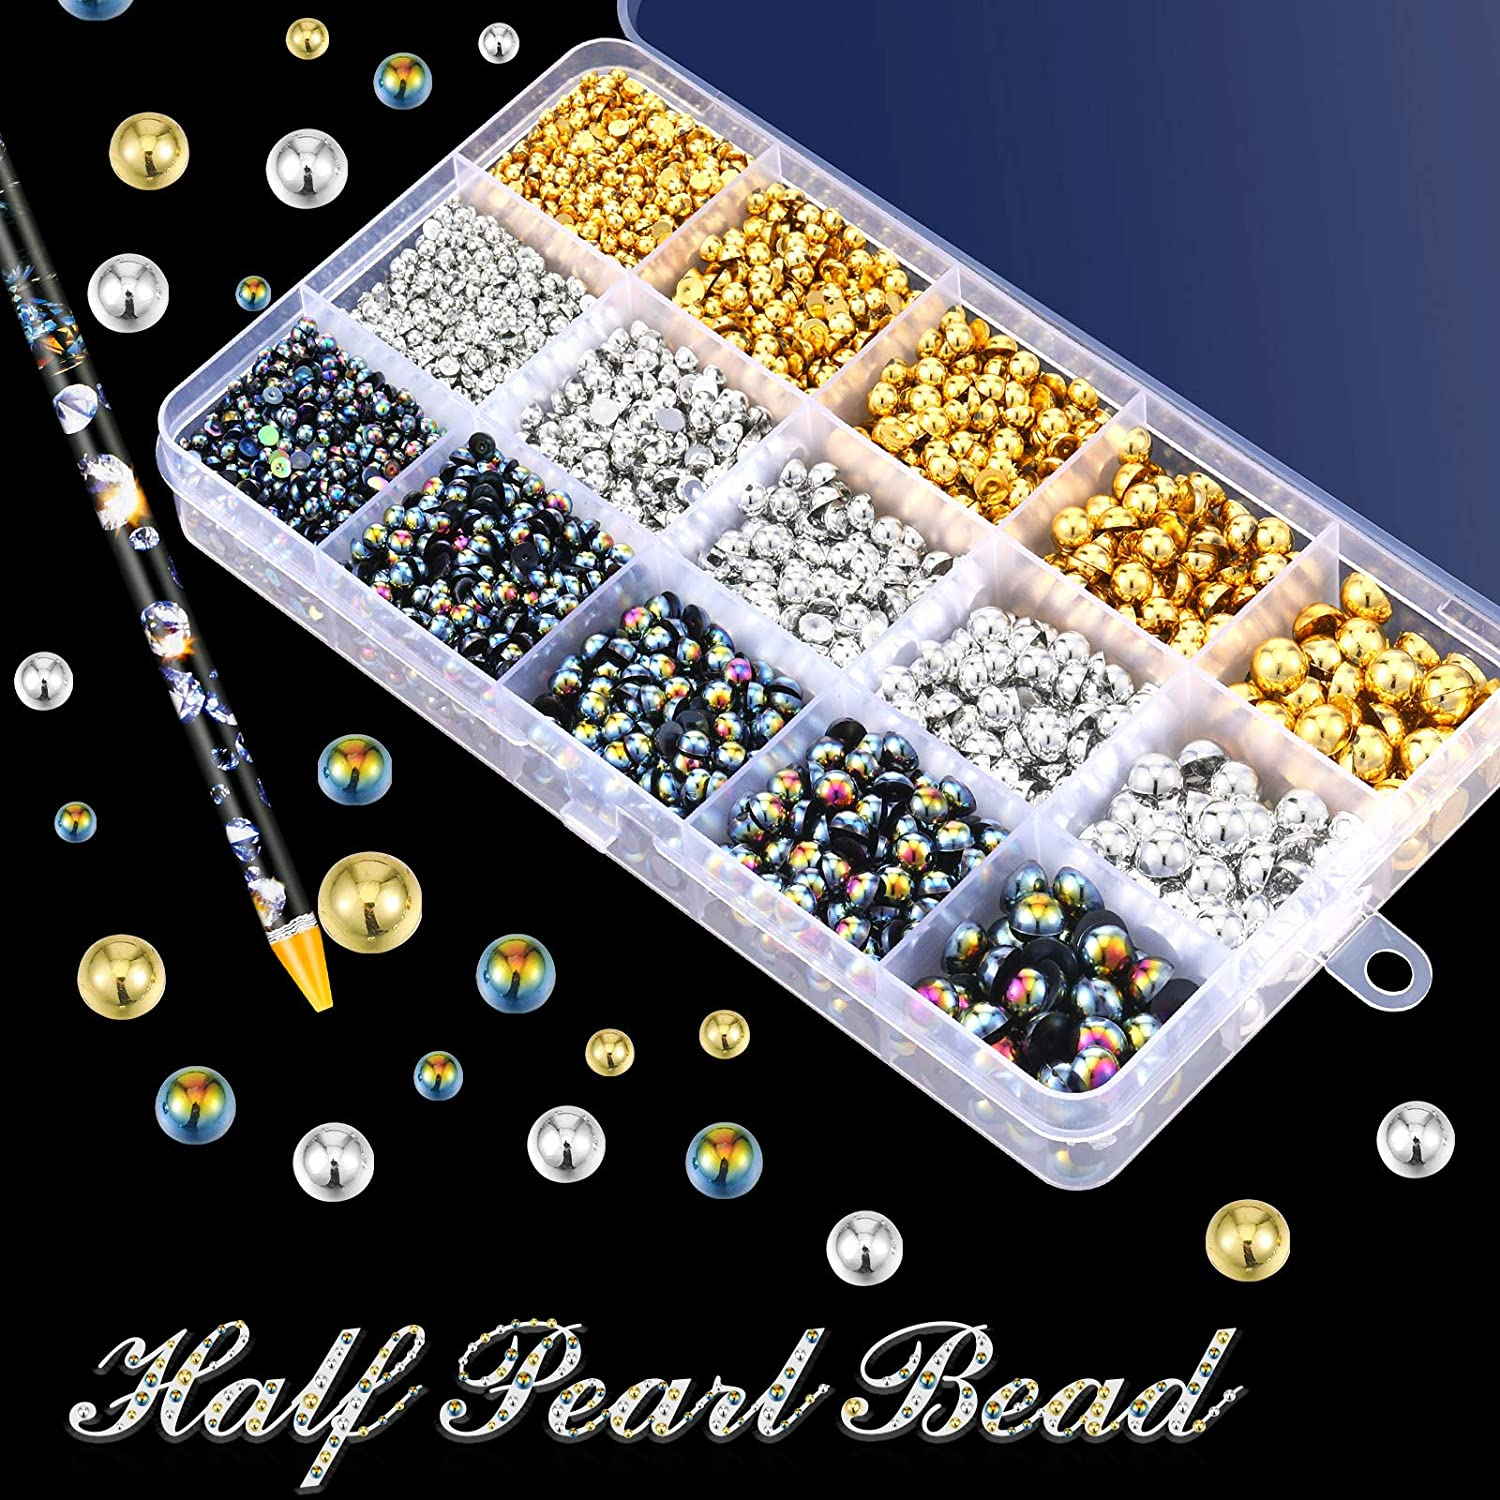 6100/Pieces/ABS Half Round/Pearls Flatback Pearl Beads with/Self/Adhesive/Resin/Rhinestone/Picker/Pencil/for/DIY/Phone/Nail/Face/Art,/Mixed/Sizes/3//4//5//6//8/mm B